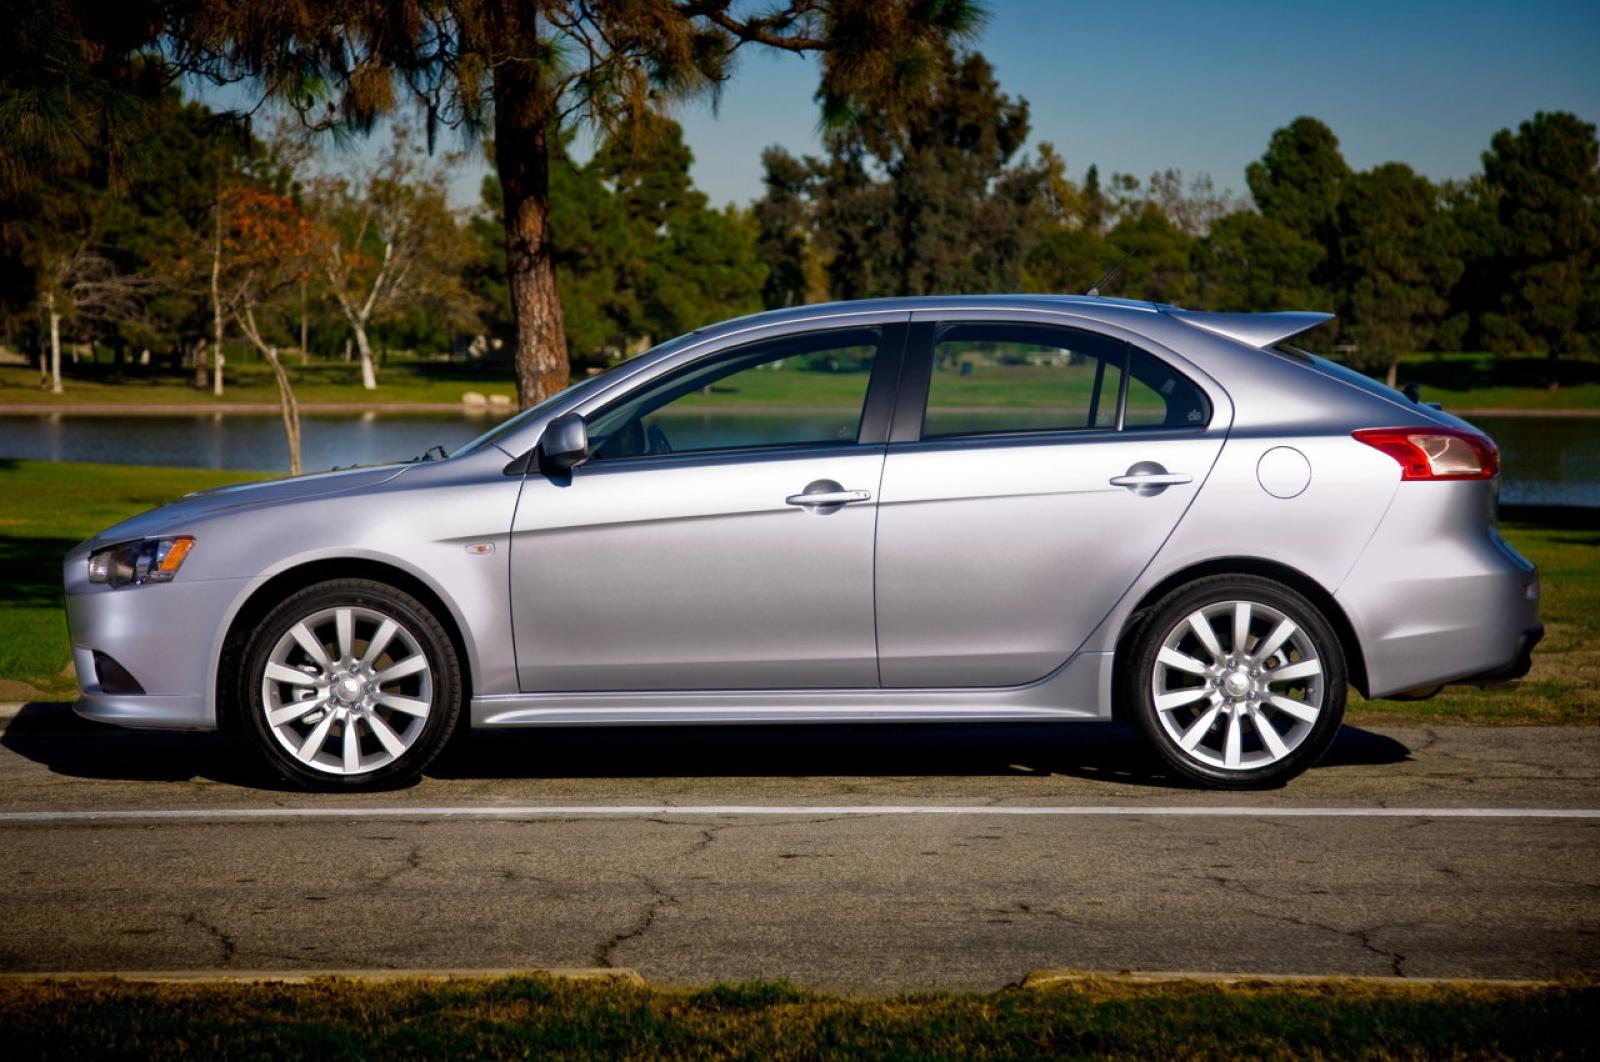 2010 Mitsubishi Lancer Sportback - Information and photos - ZombieDrive